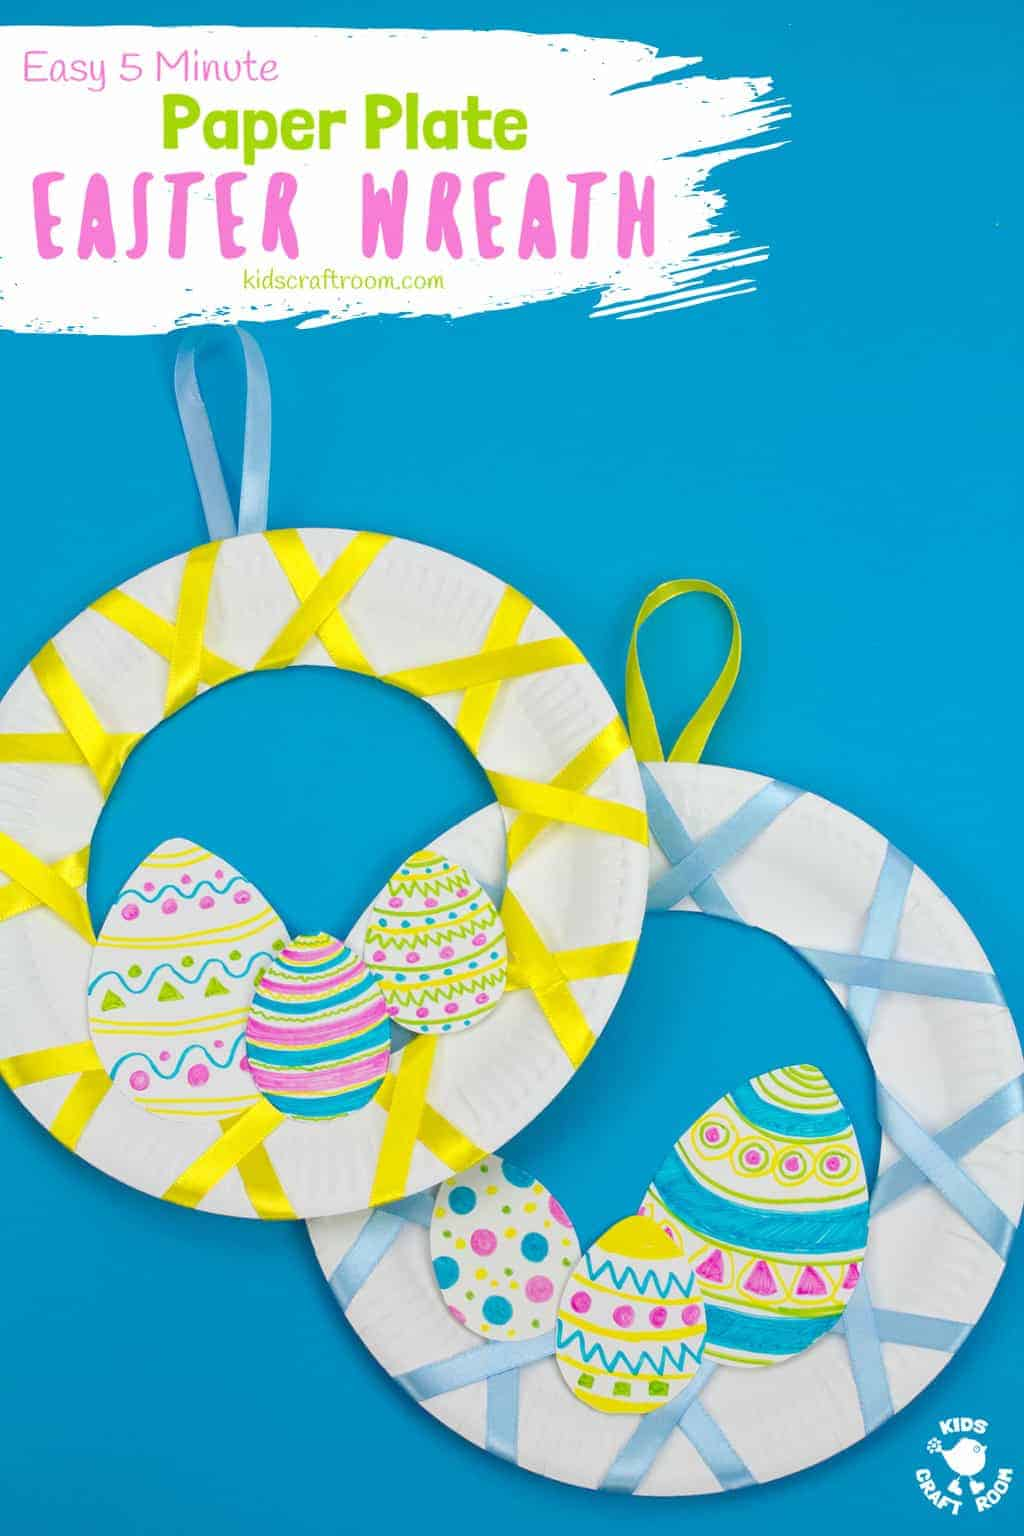 Easy Peasy Paper Plate Easter Wreath Kids Craft Room